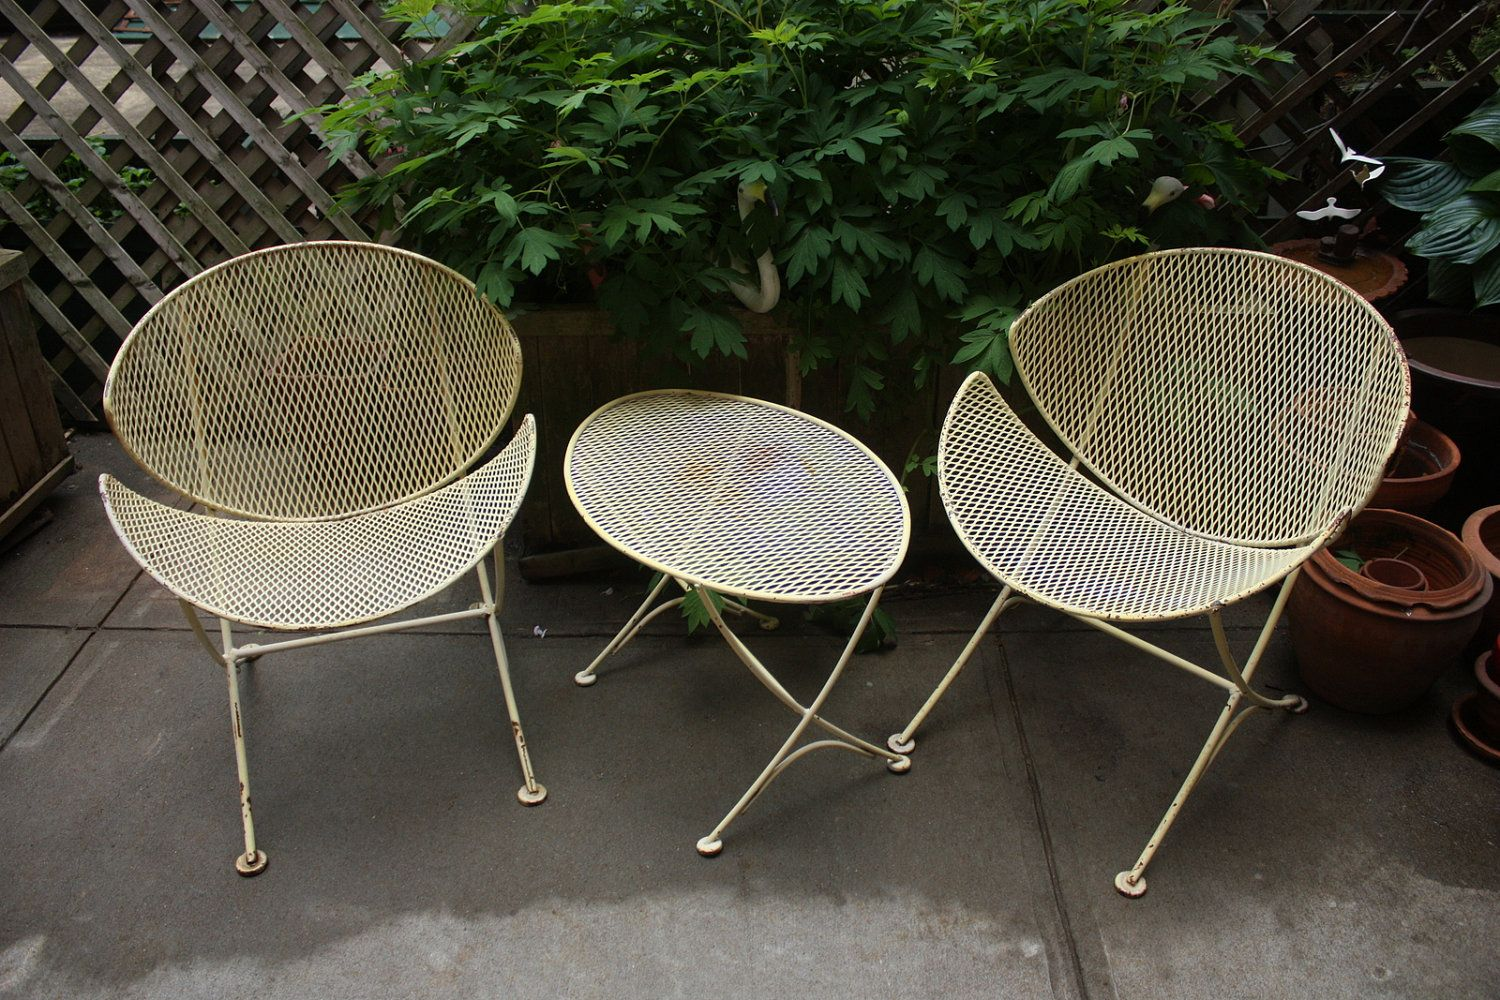 Vtg mid century salterini orange slice iron patio furniture chairs table set